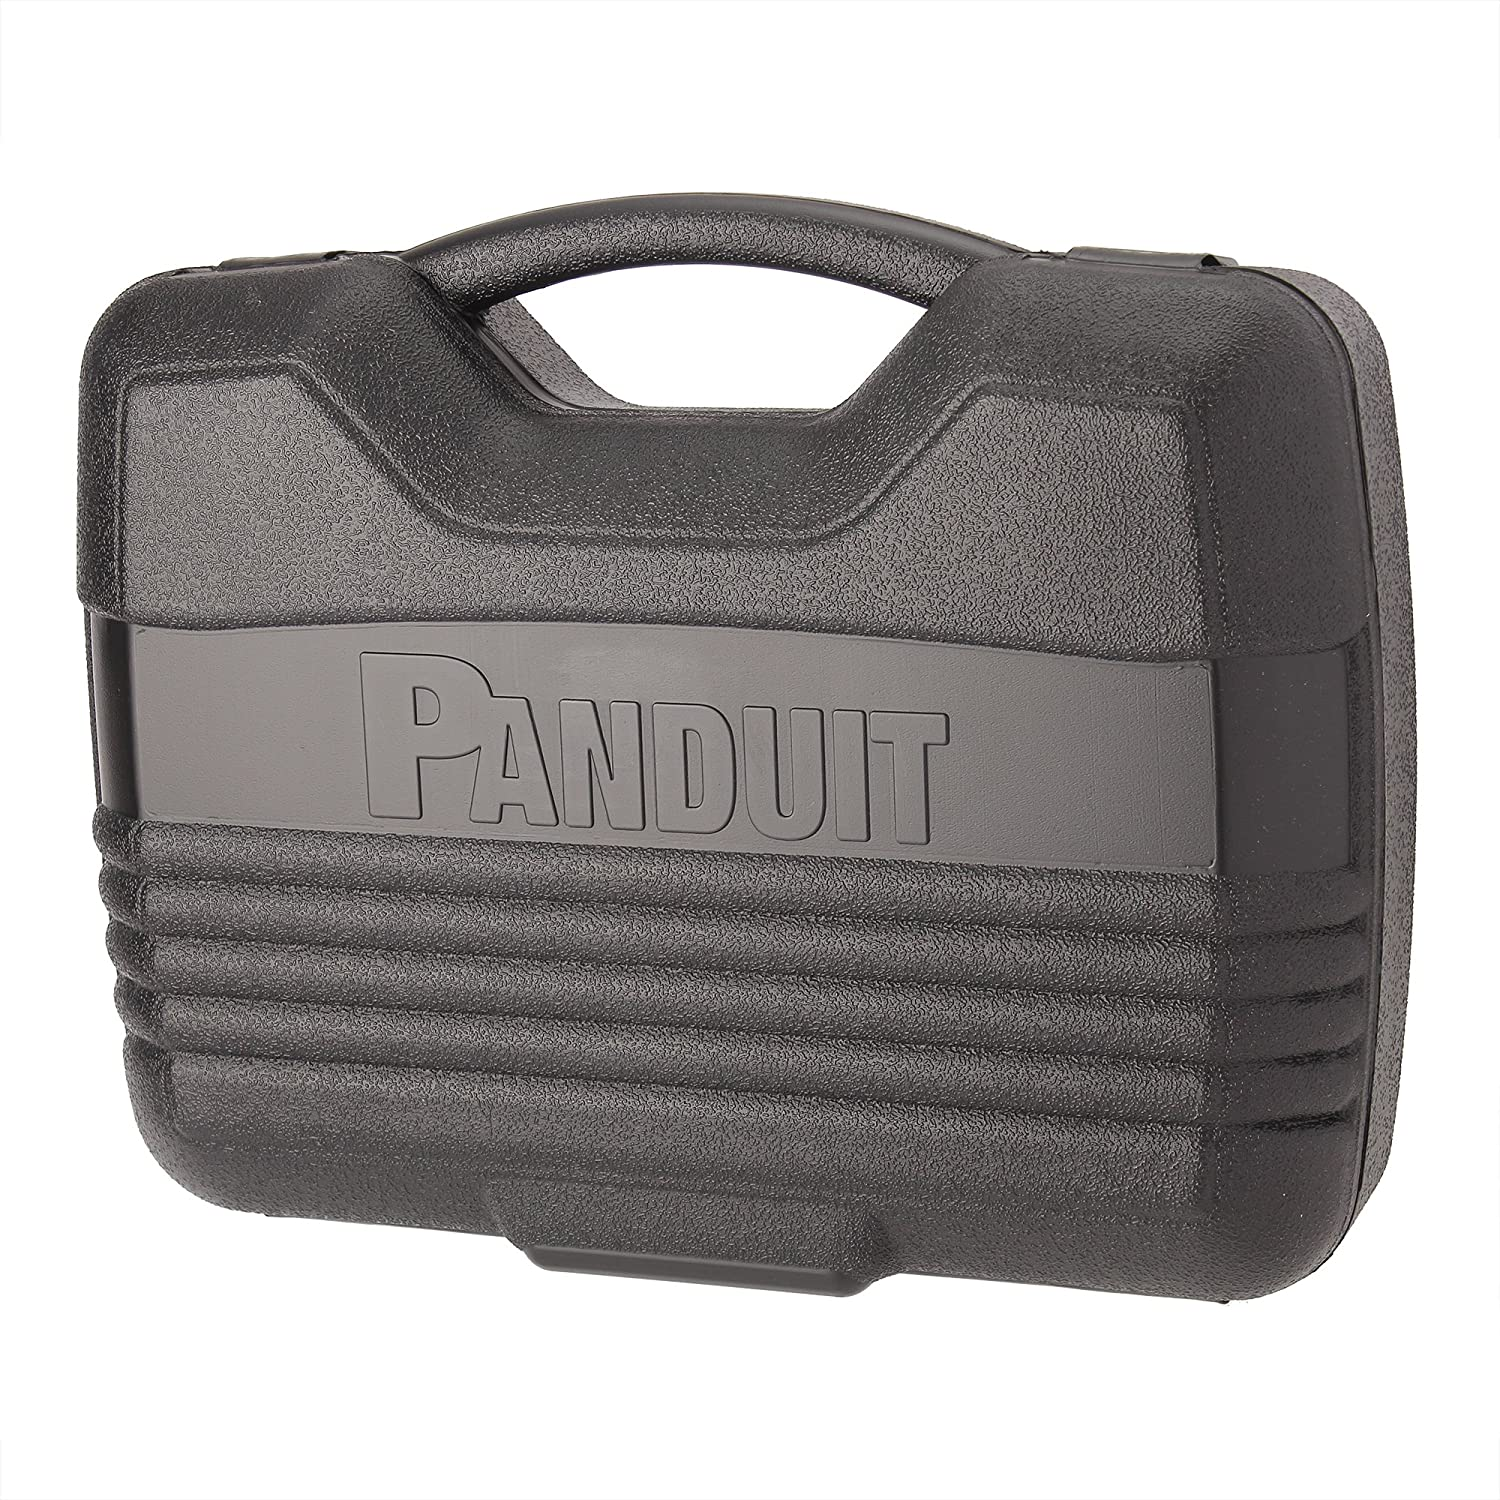 Panduit LS8-CASE Printer carrying case - for PanTher LS8E, LS8E Hand-Held Thermal Transfer Printer and Accessories